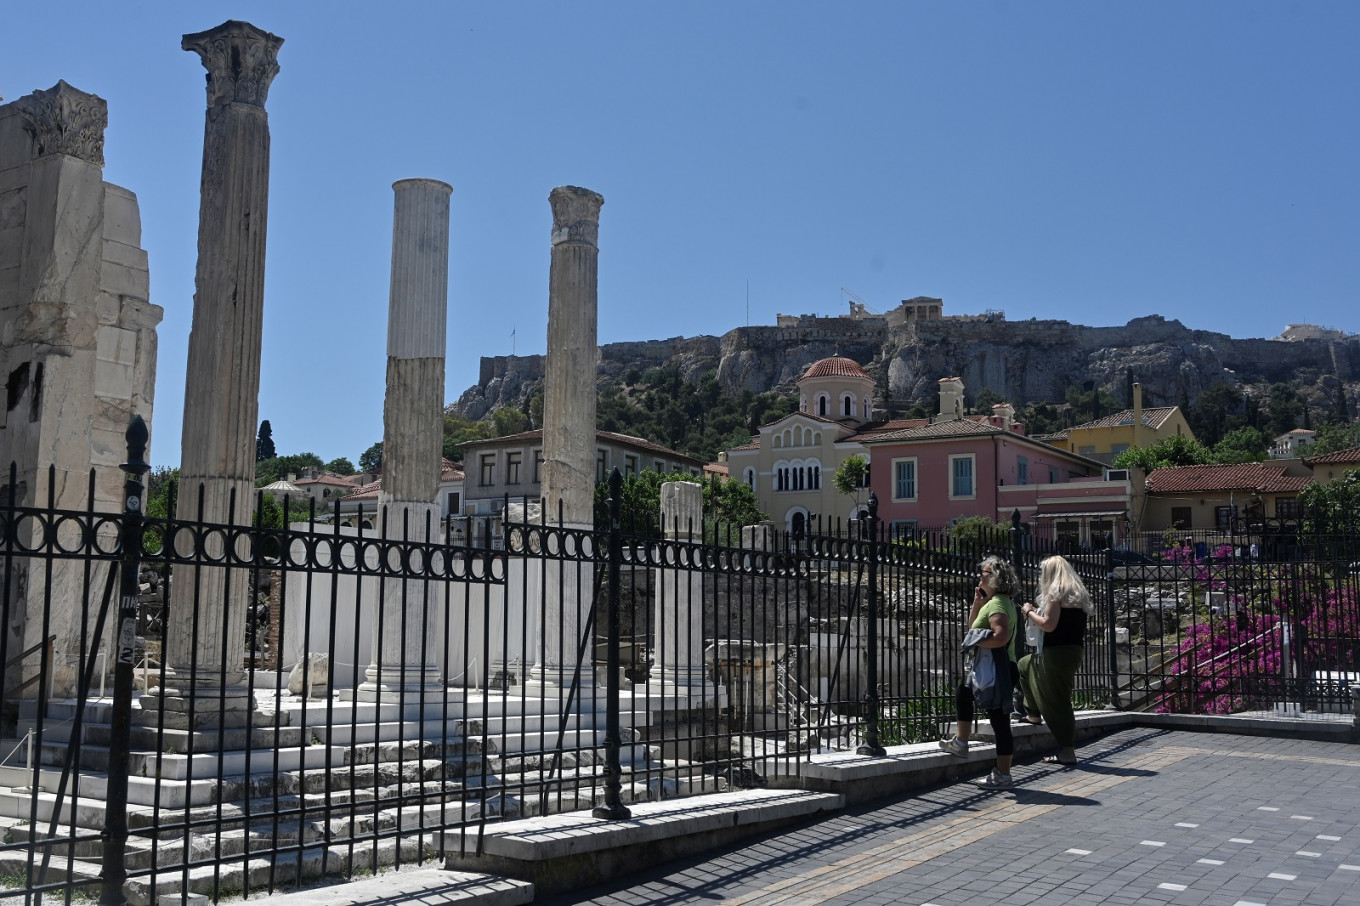 Greece 'more than sea and sun', says PM in tourism launch